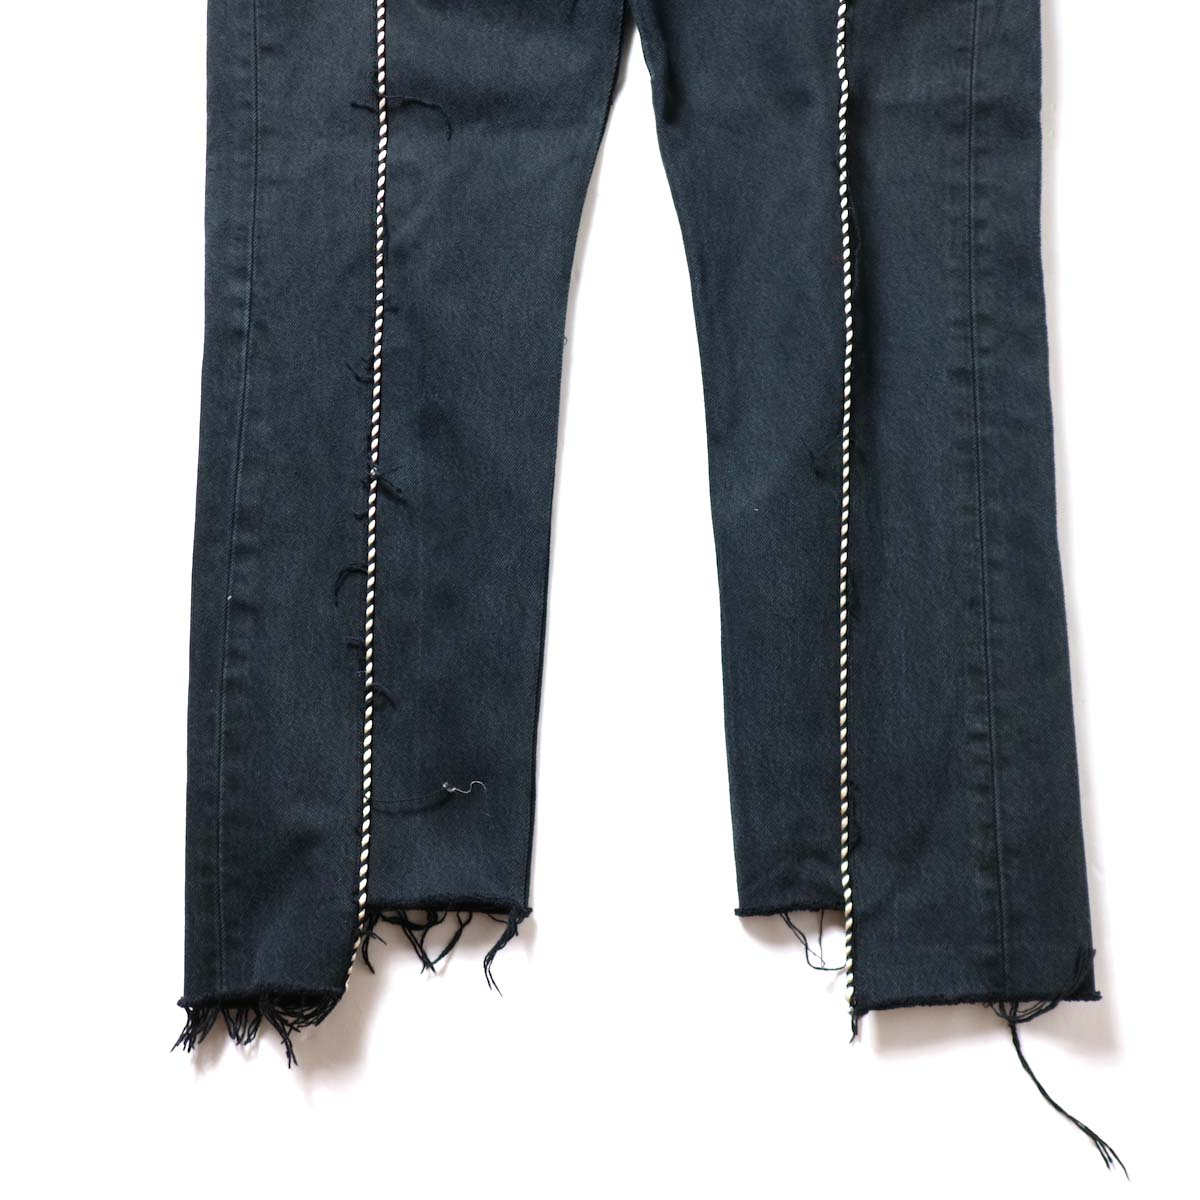 OLD PARK / Western Jeans Black (Msize-G)裾